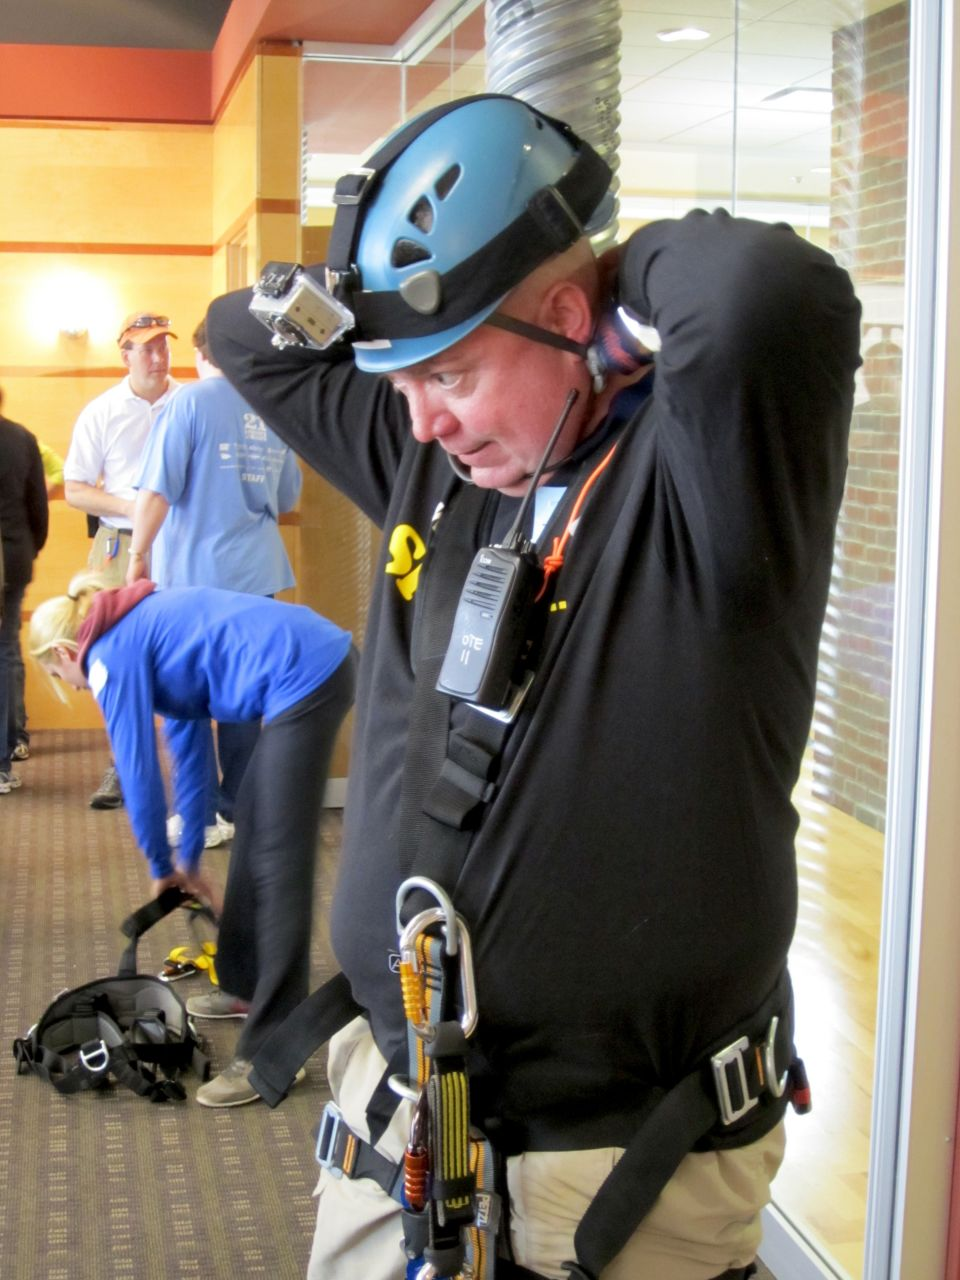 Getting ready to go over the edge.